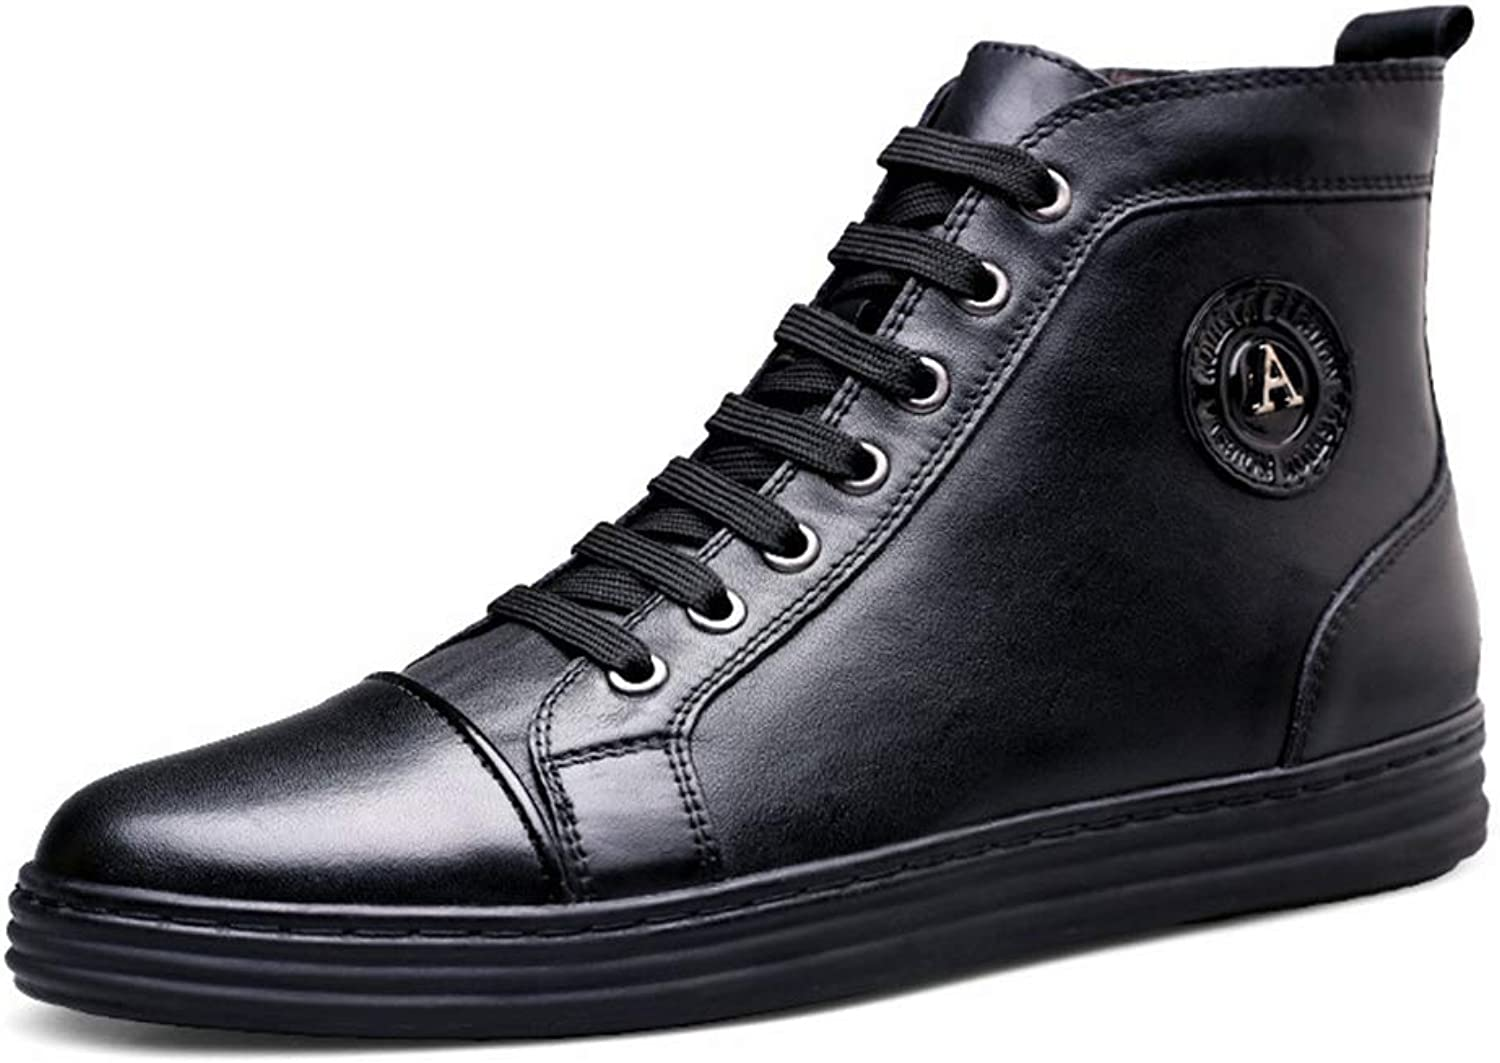 Men's Leather shoes Fall Winter New Casual shoes High-Top Comfortable Deck shoes Flat shoes Driving shoes,Black,43